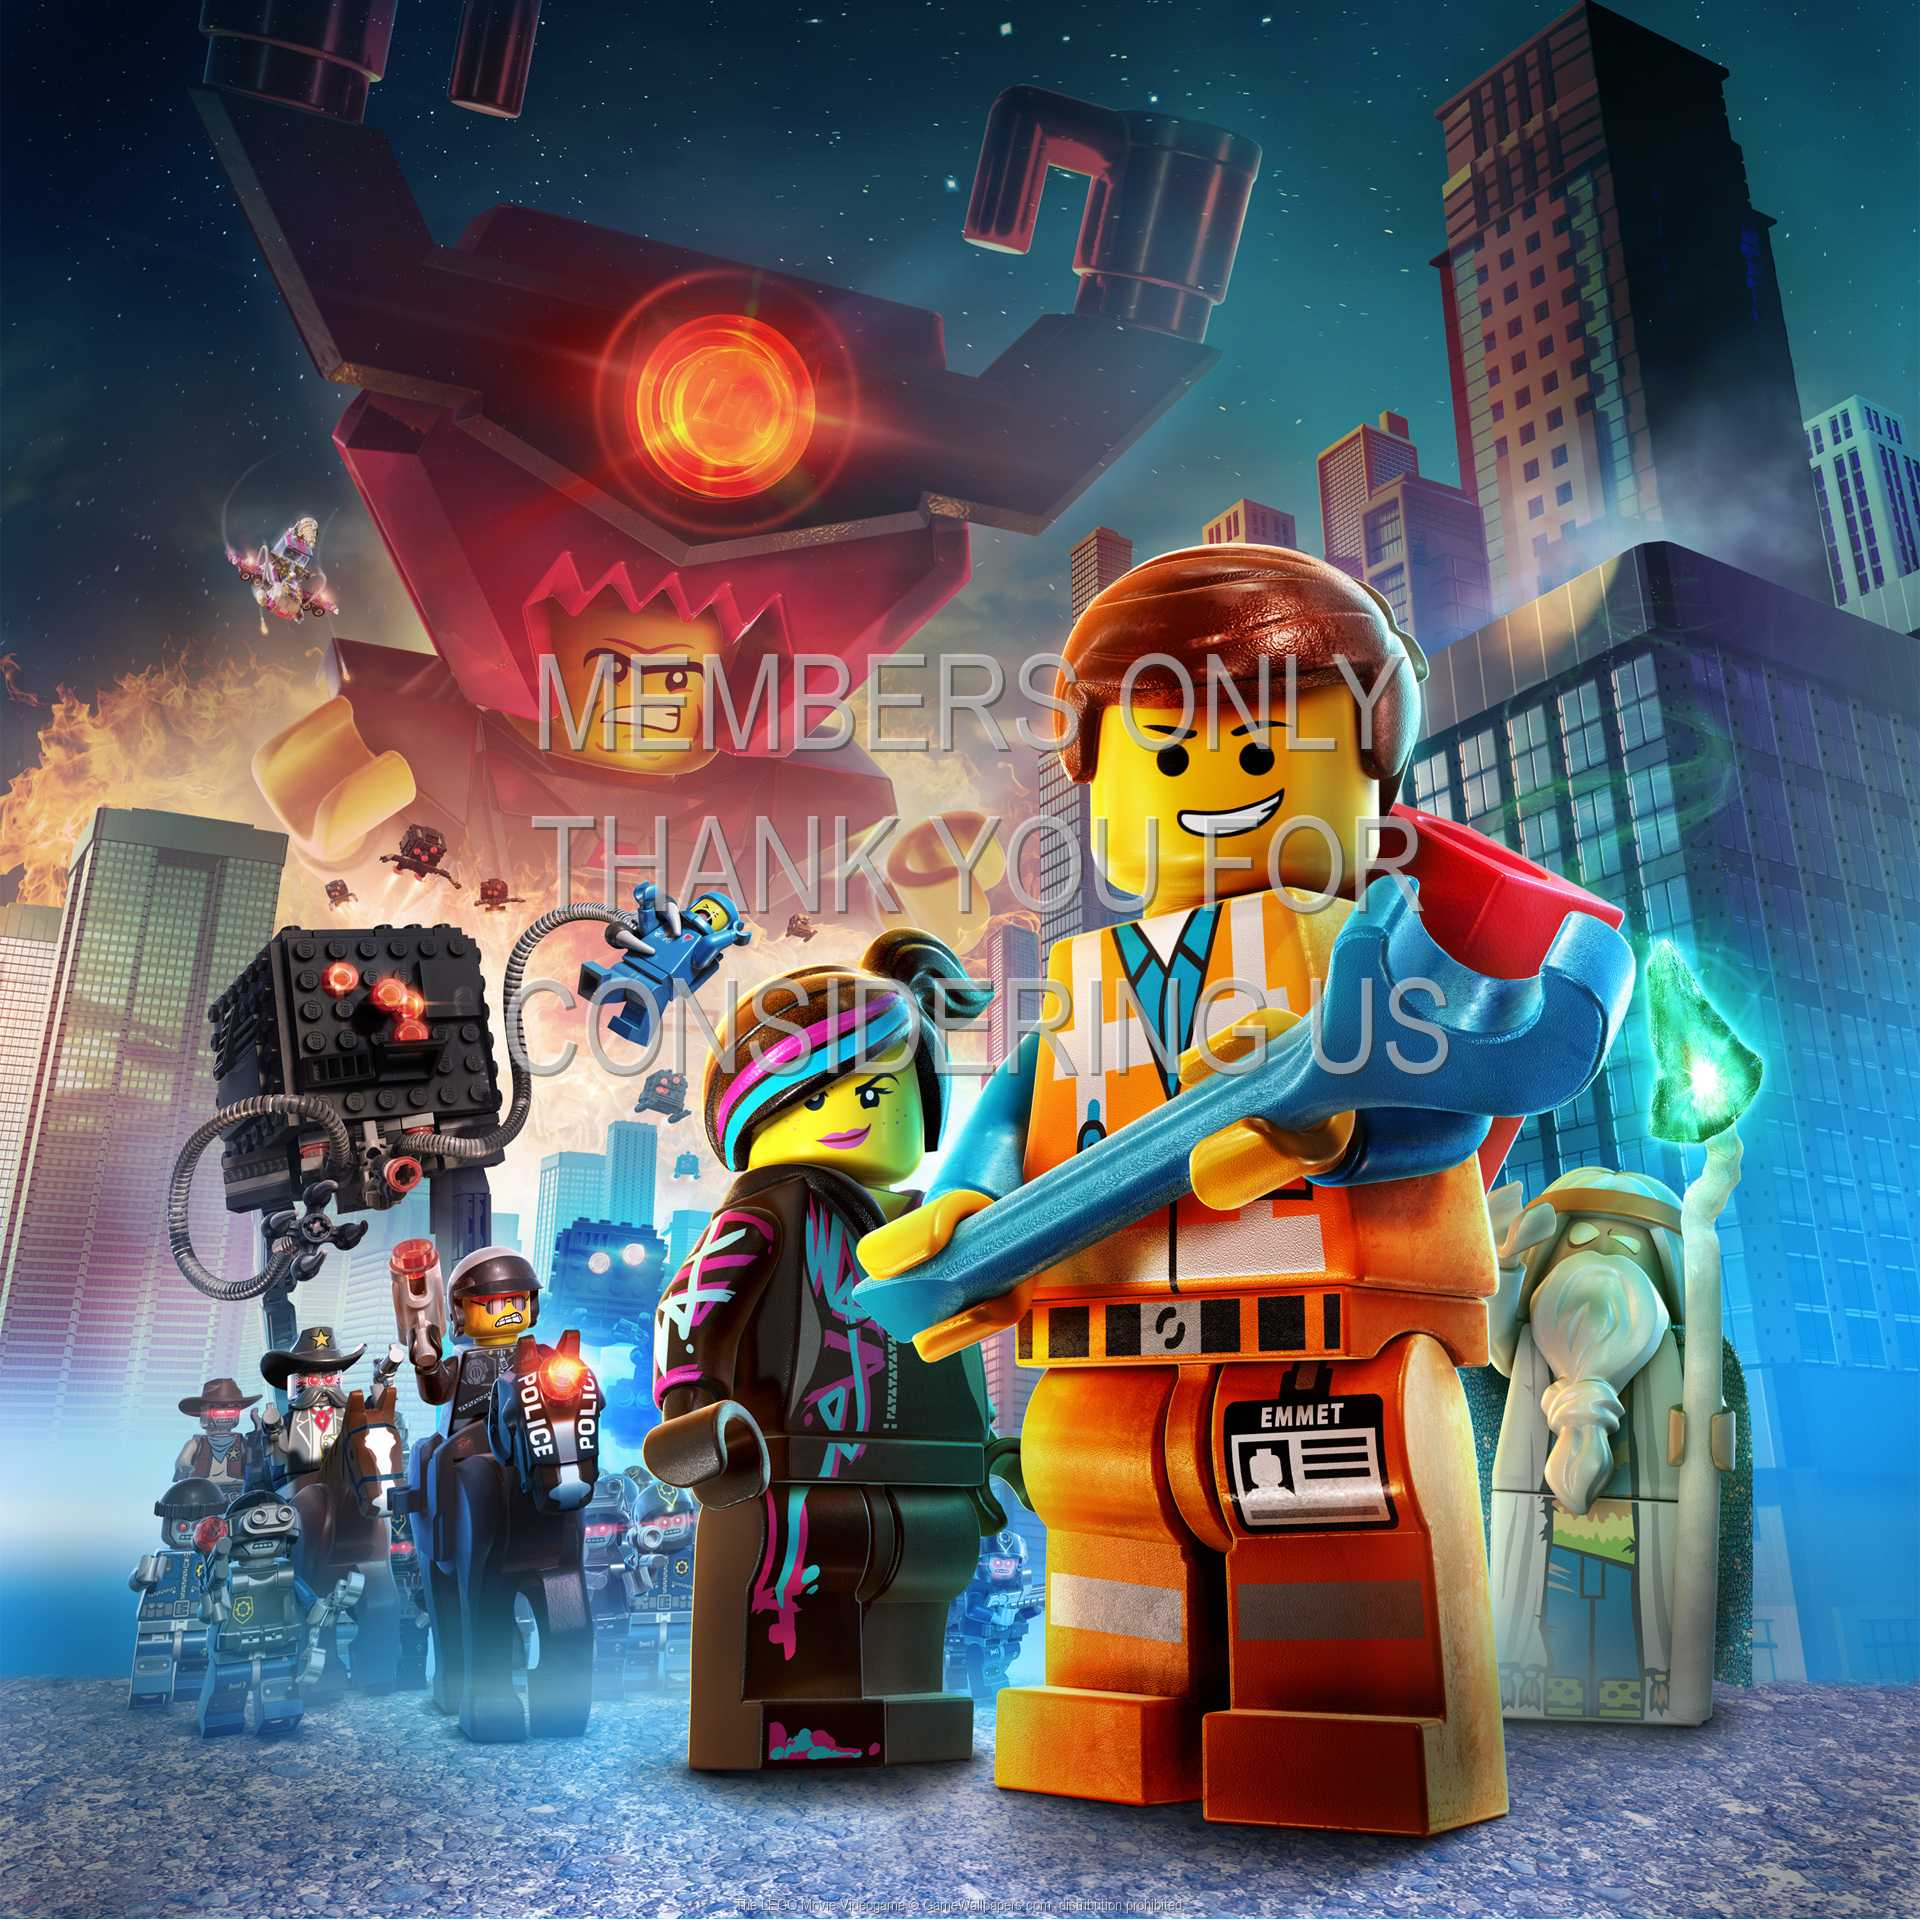 The LEGO Movie Videogame 1080p Horizontal Mobile wallpaper or background 01